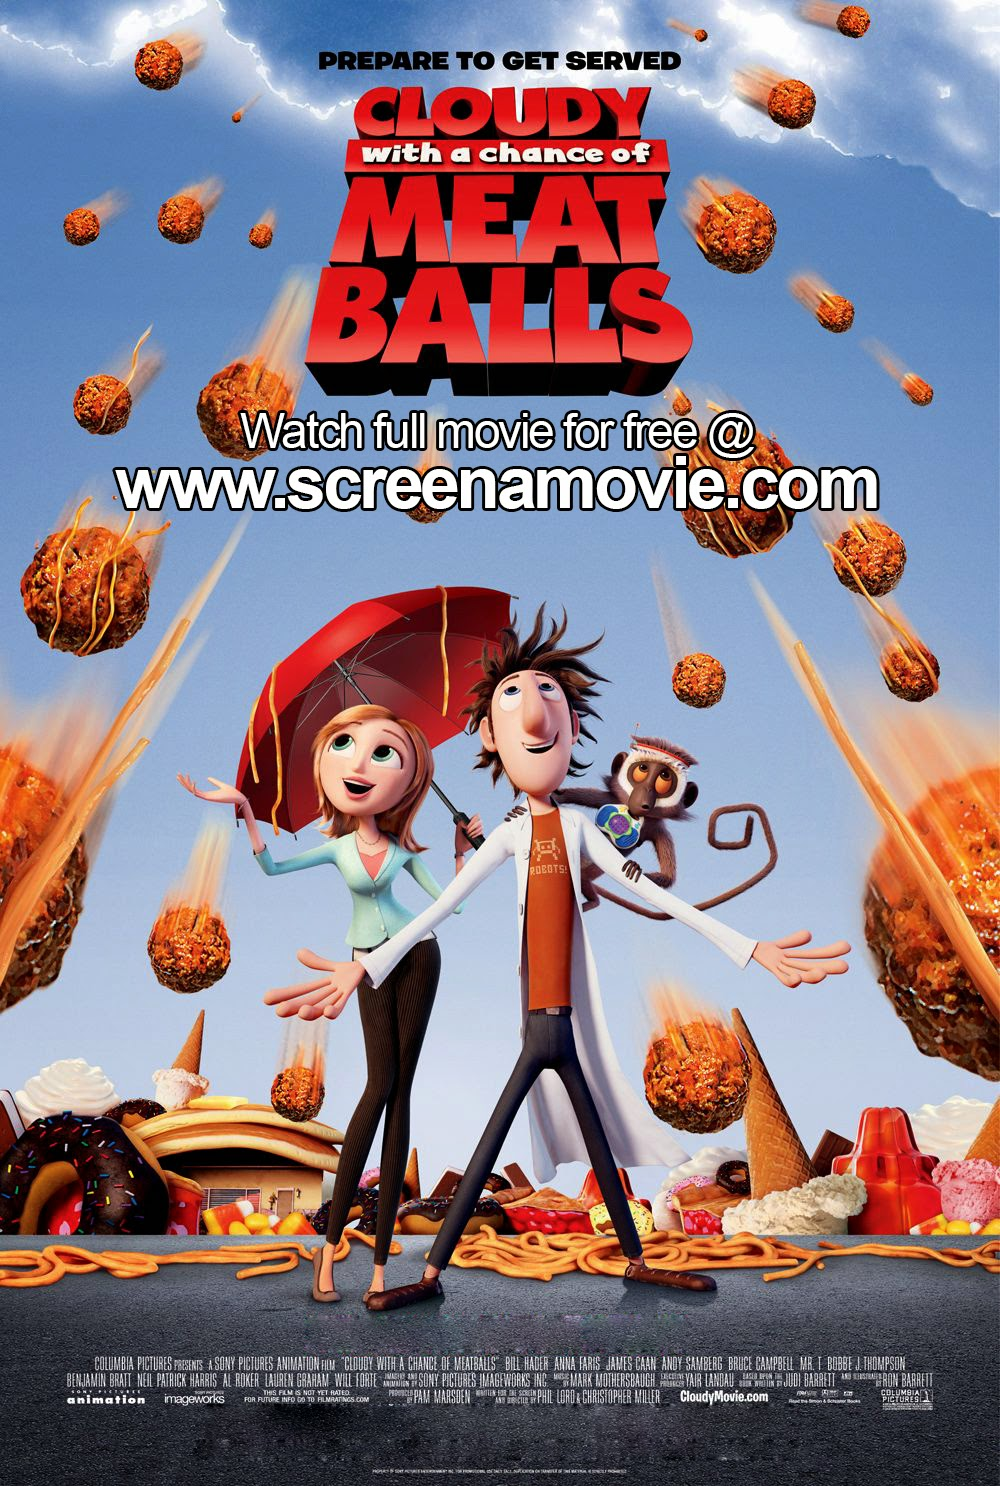 Cloudy with a Chance of Meatballs [Full Movie] #FREEONLINEMOVIE